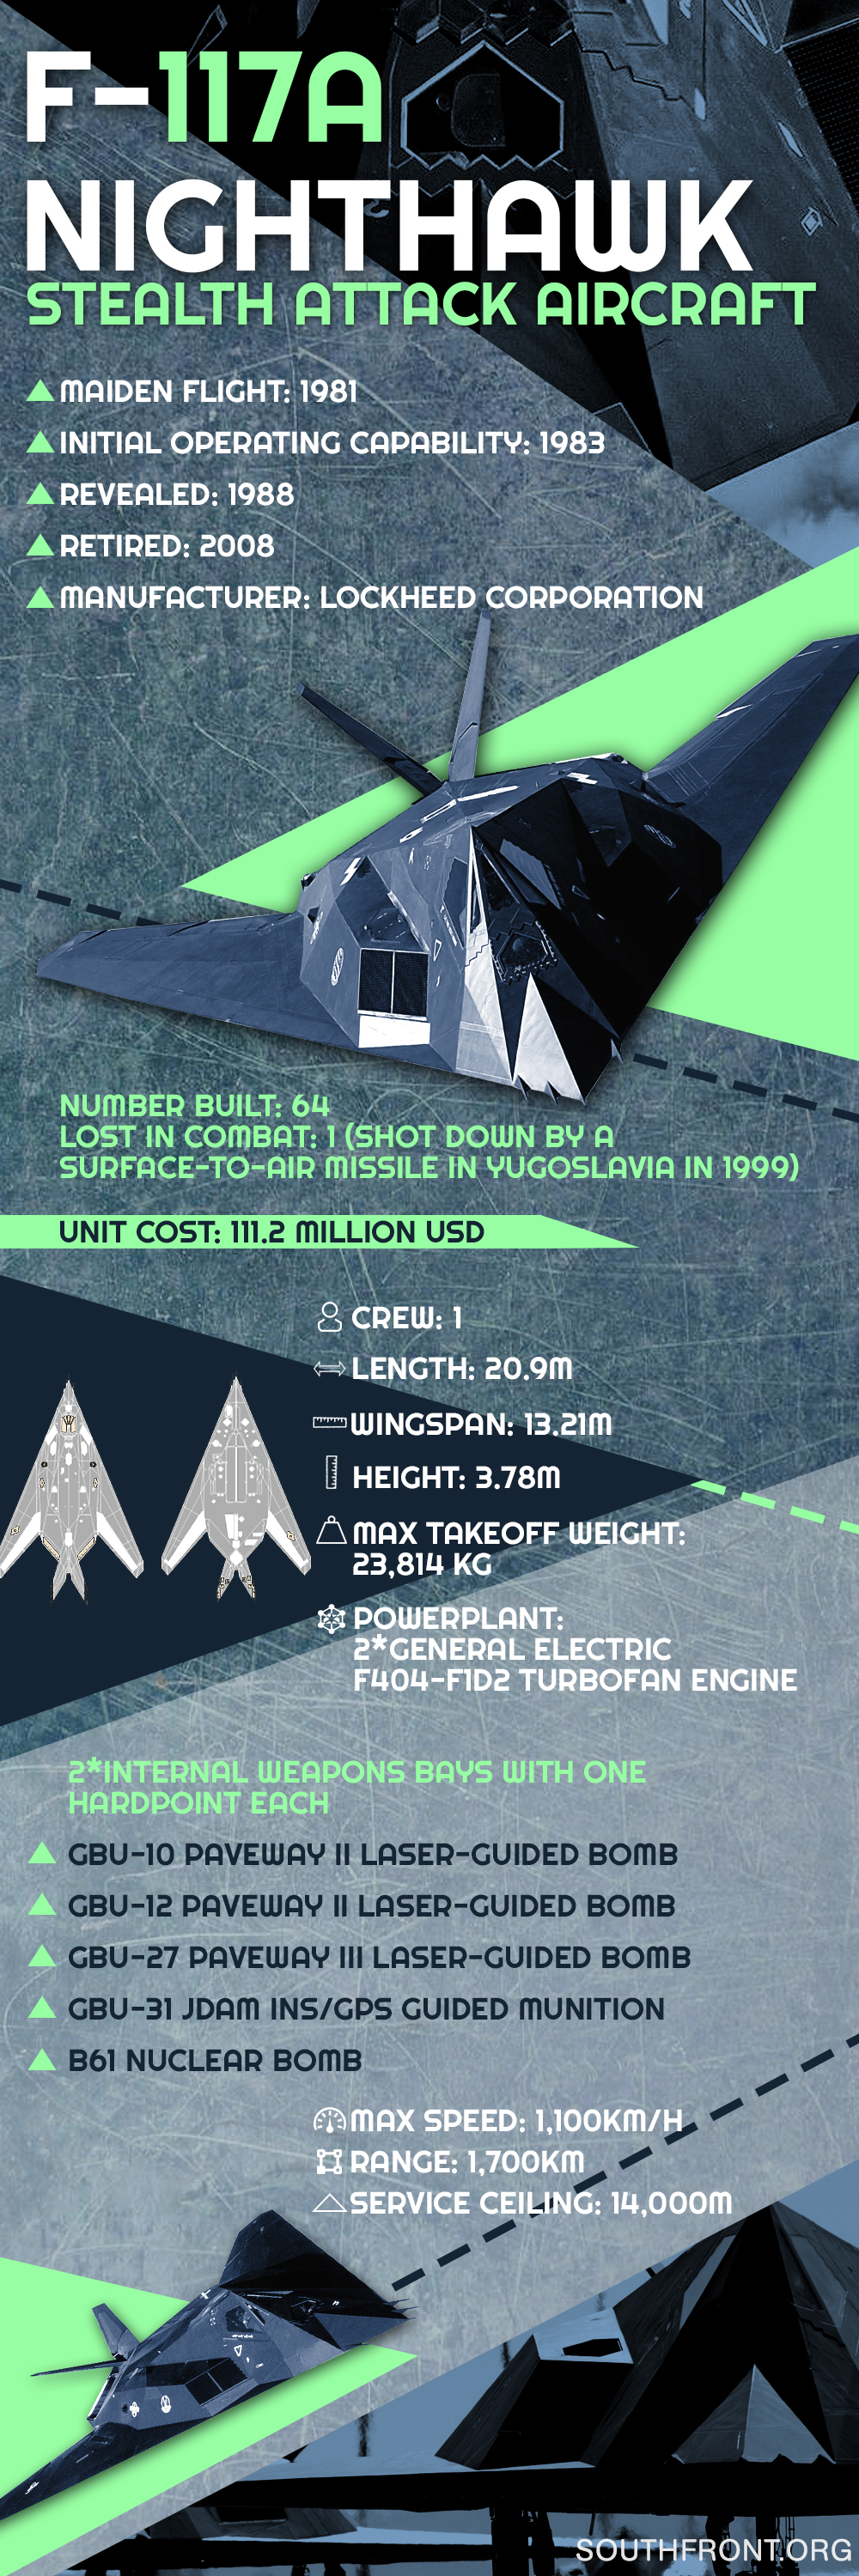 F-117A Nighthawk Stealth Attack Aircraft (Infographics)